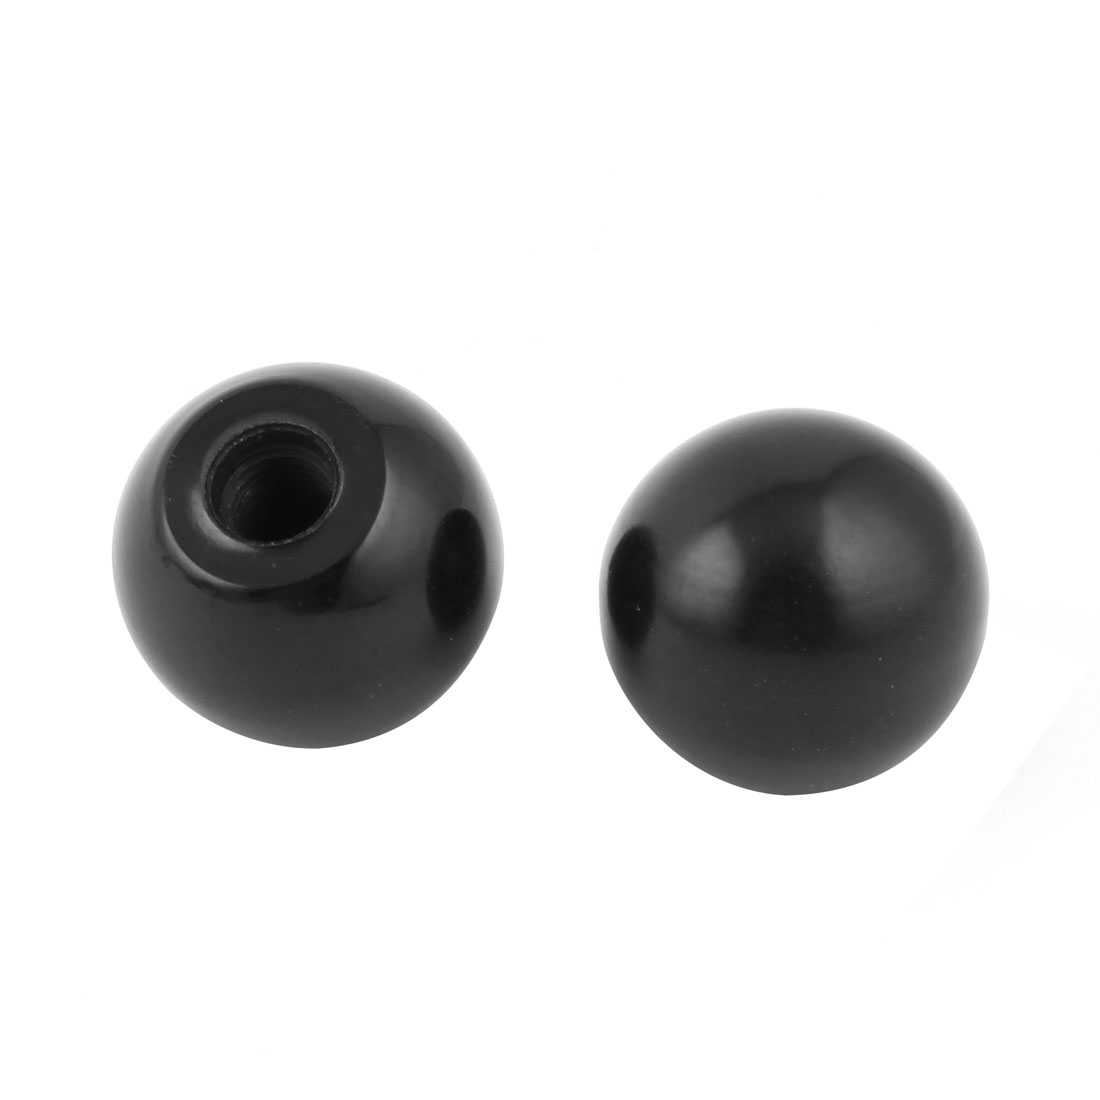 2pcs M10x22mm Thread Black Round Plastic 35mm Diameter Ball Lever Knob